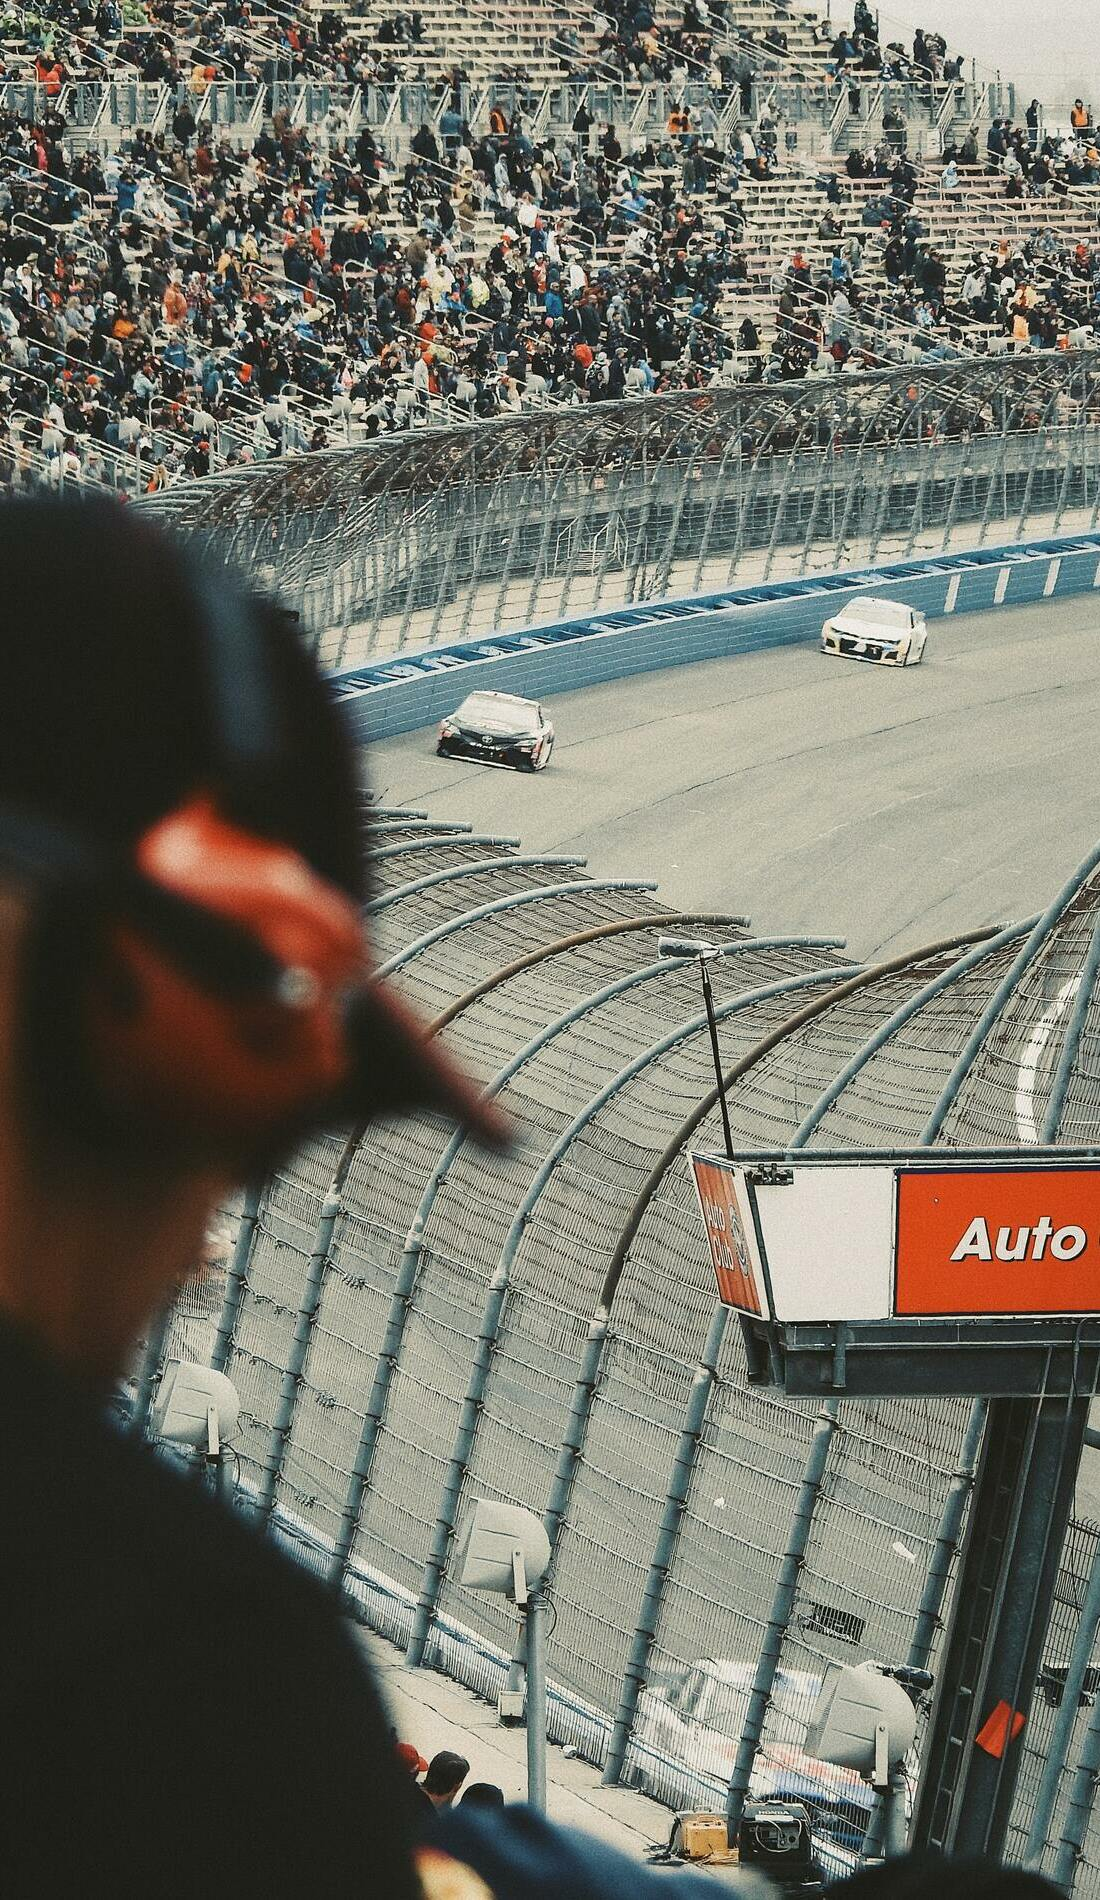 A Consumers Energy 400 live event